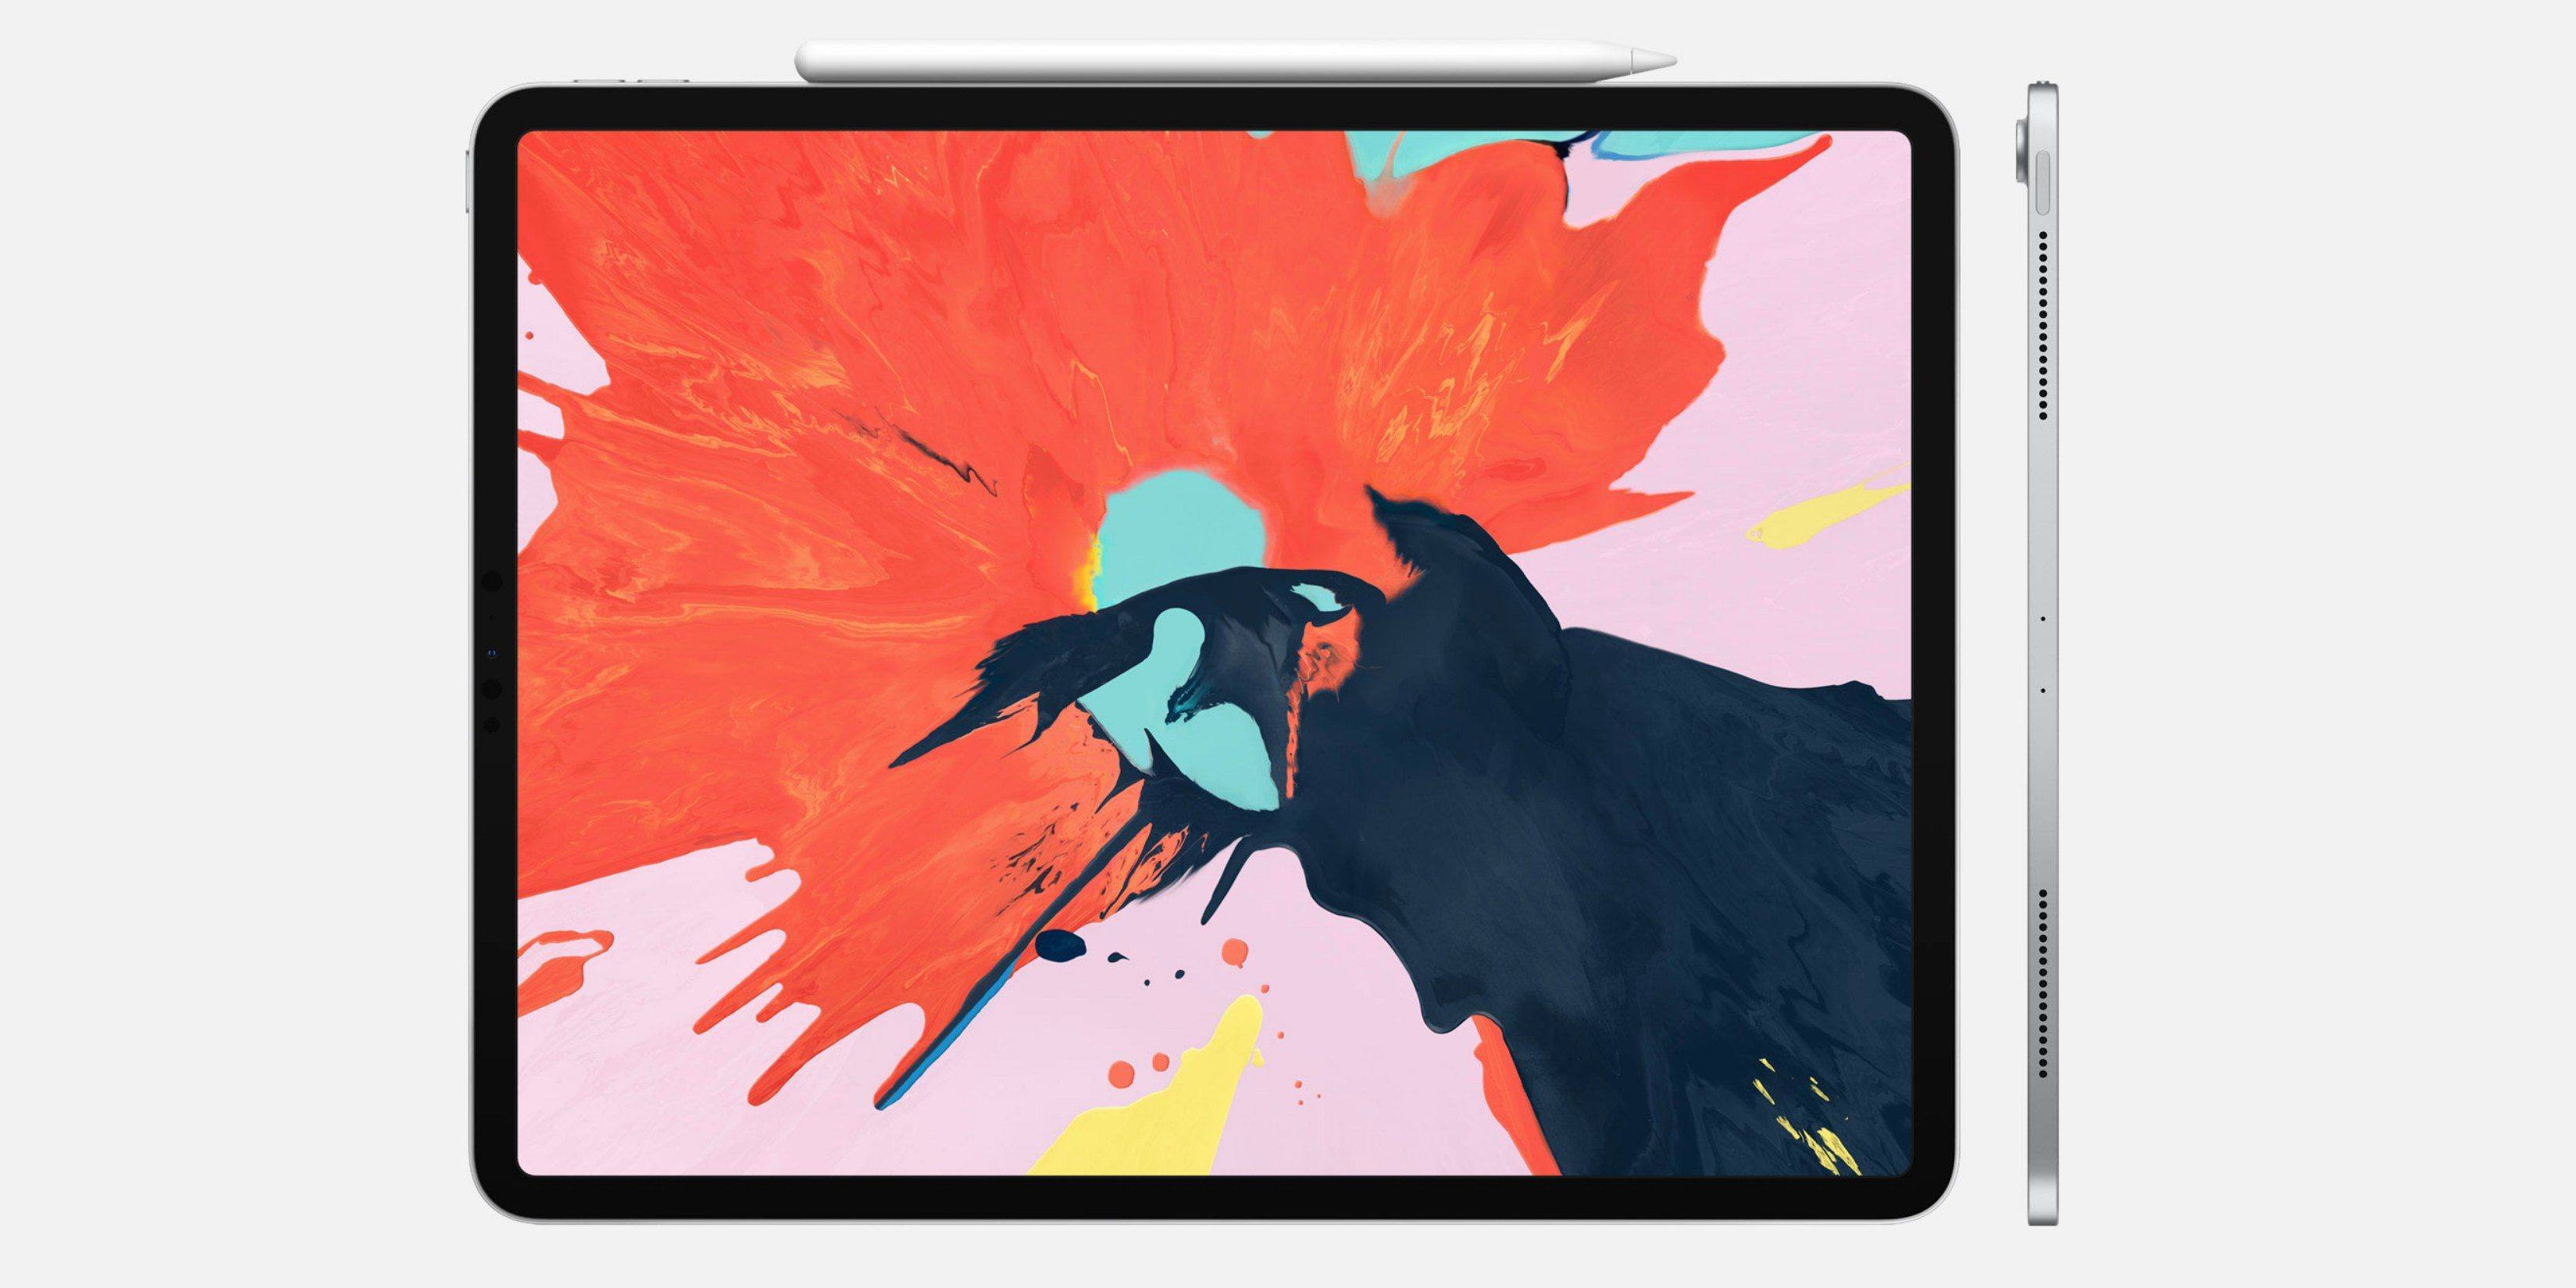 Latest iPad Pro up to $199 off, plus Philips Hue HomeKit lights are on sale and Apple's 12-inch MacBook